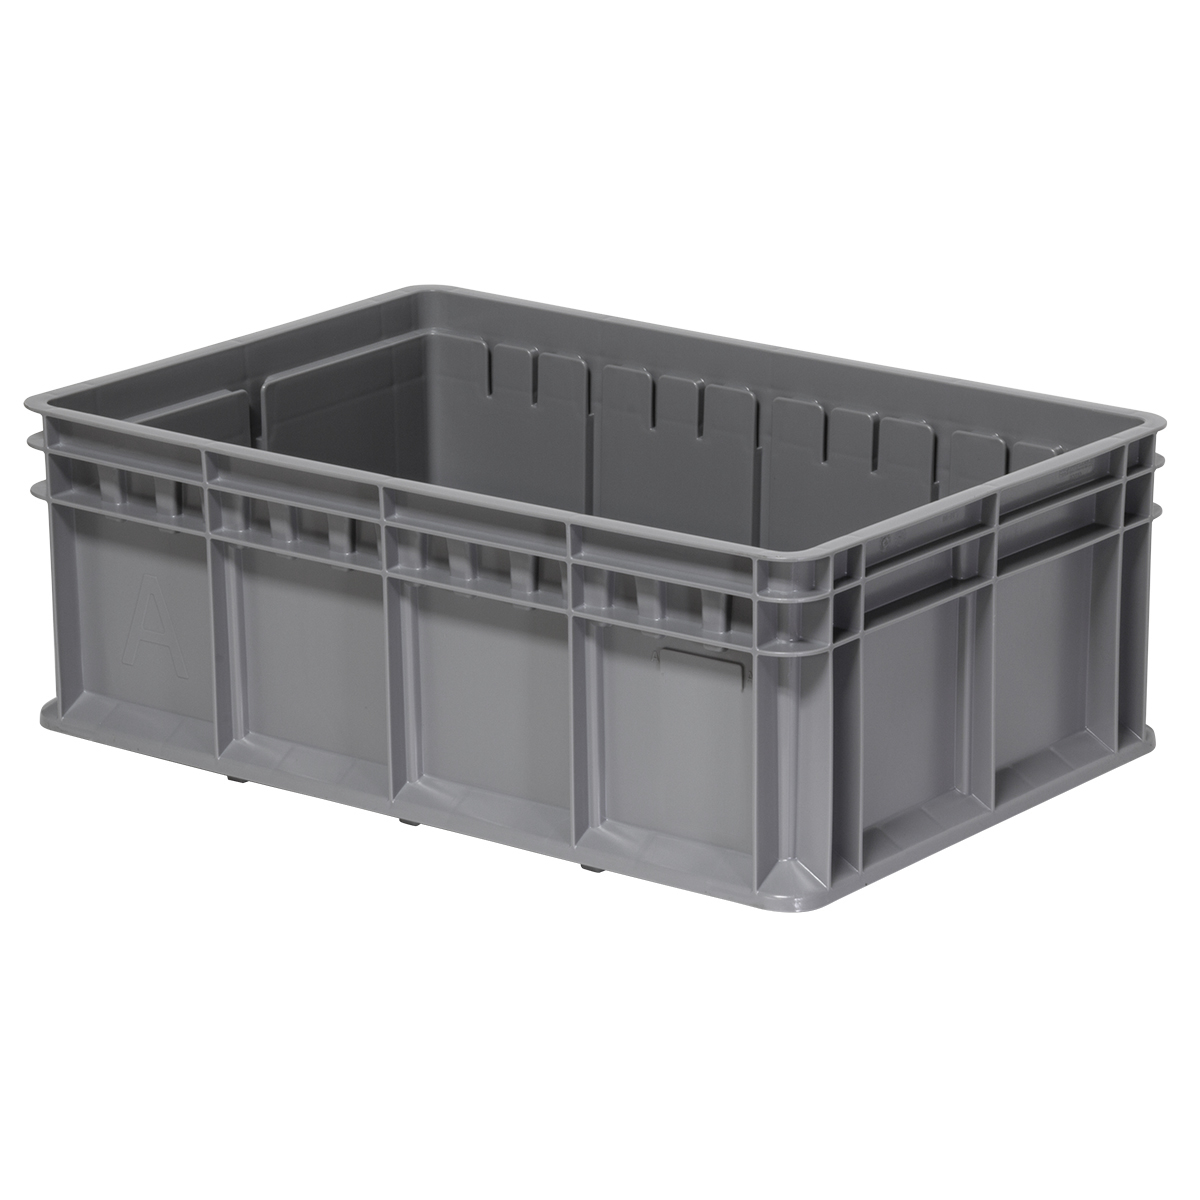 Multi-Load Tote, 23-5/8 x 15-3/4 x 8-21/32, Gray (38358GRY).  This item sold in carton quantities of 4.